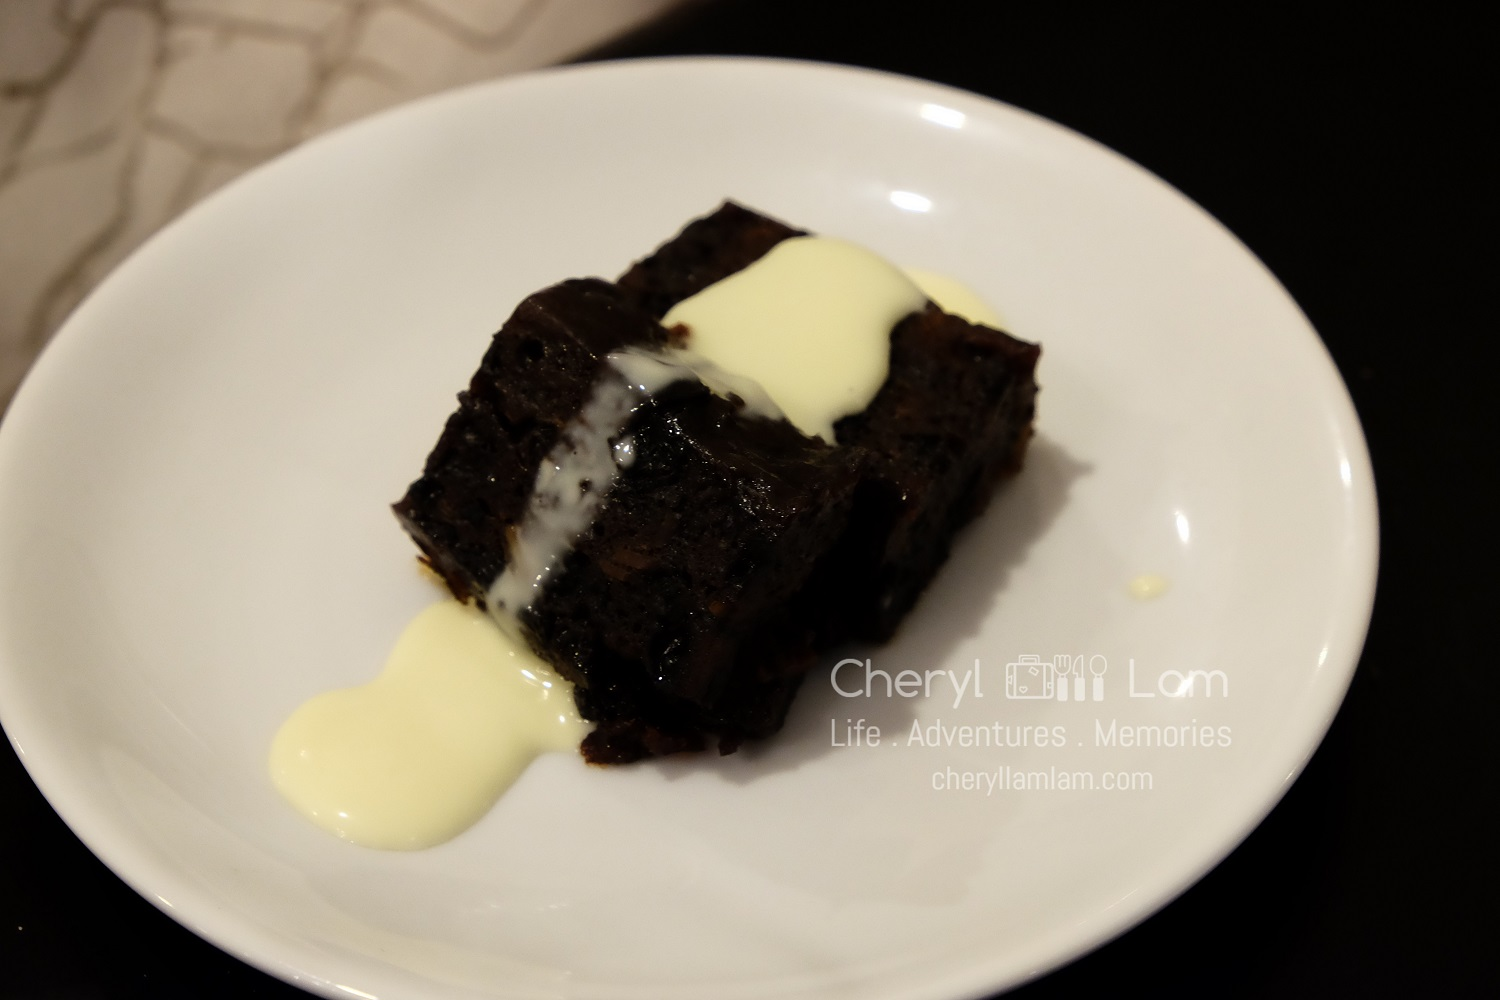 The only hot dessert of the night - Christmas pudding with custard sauce